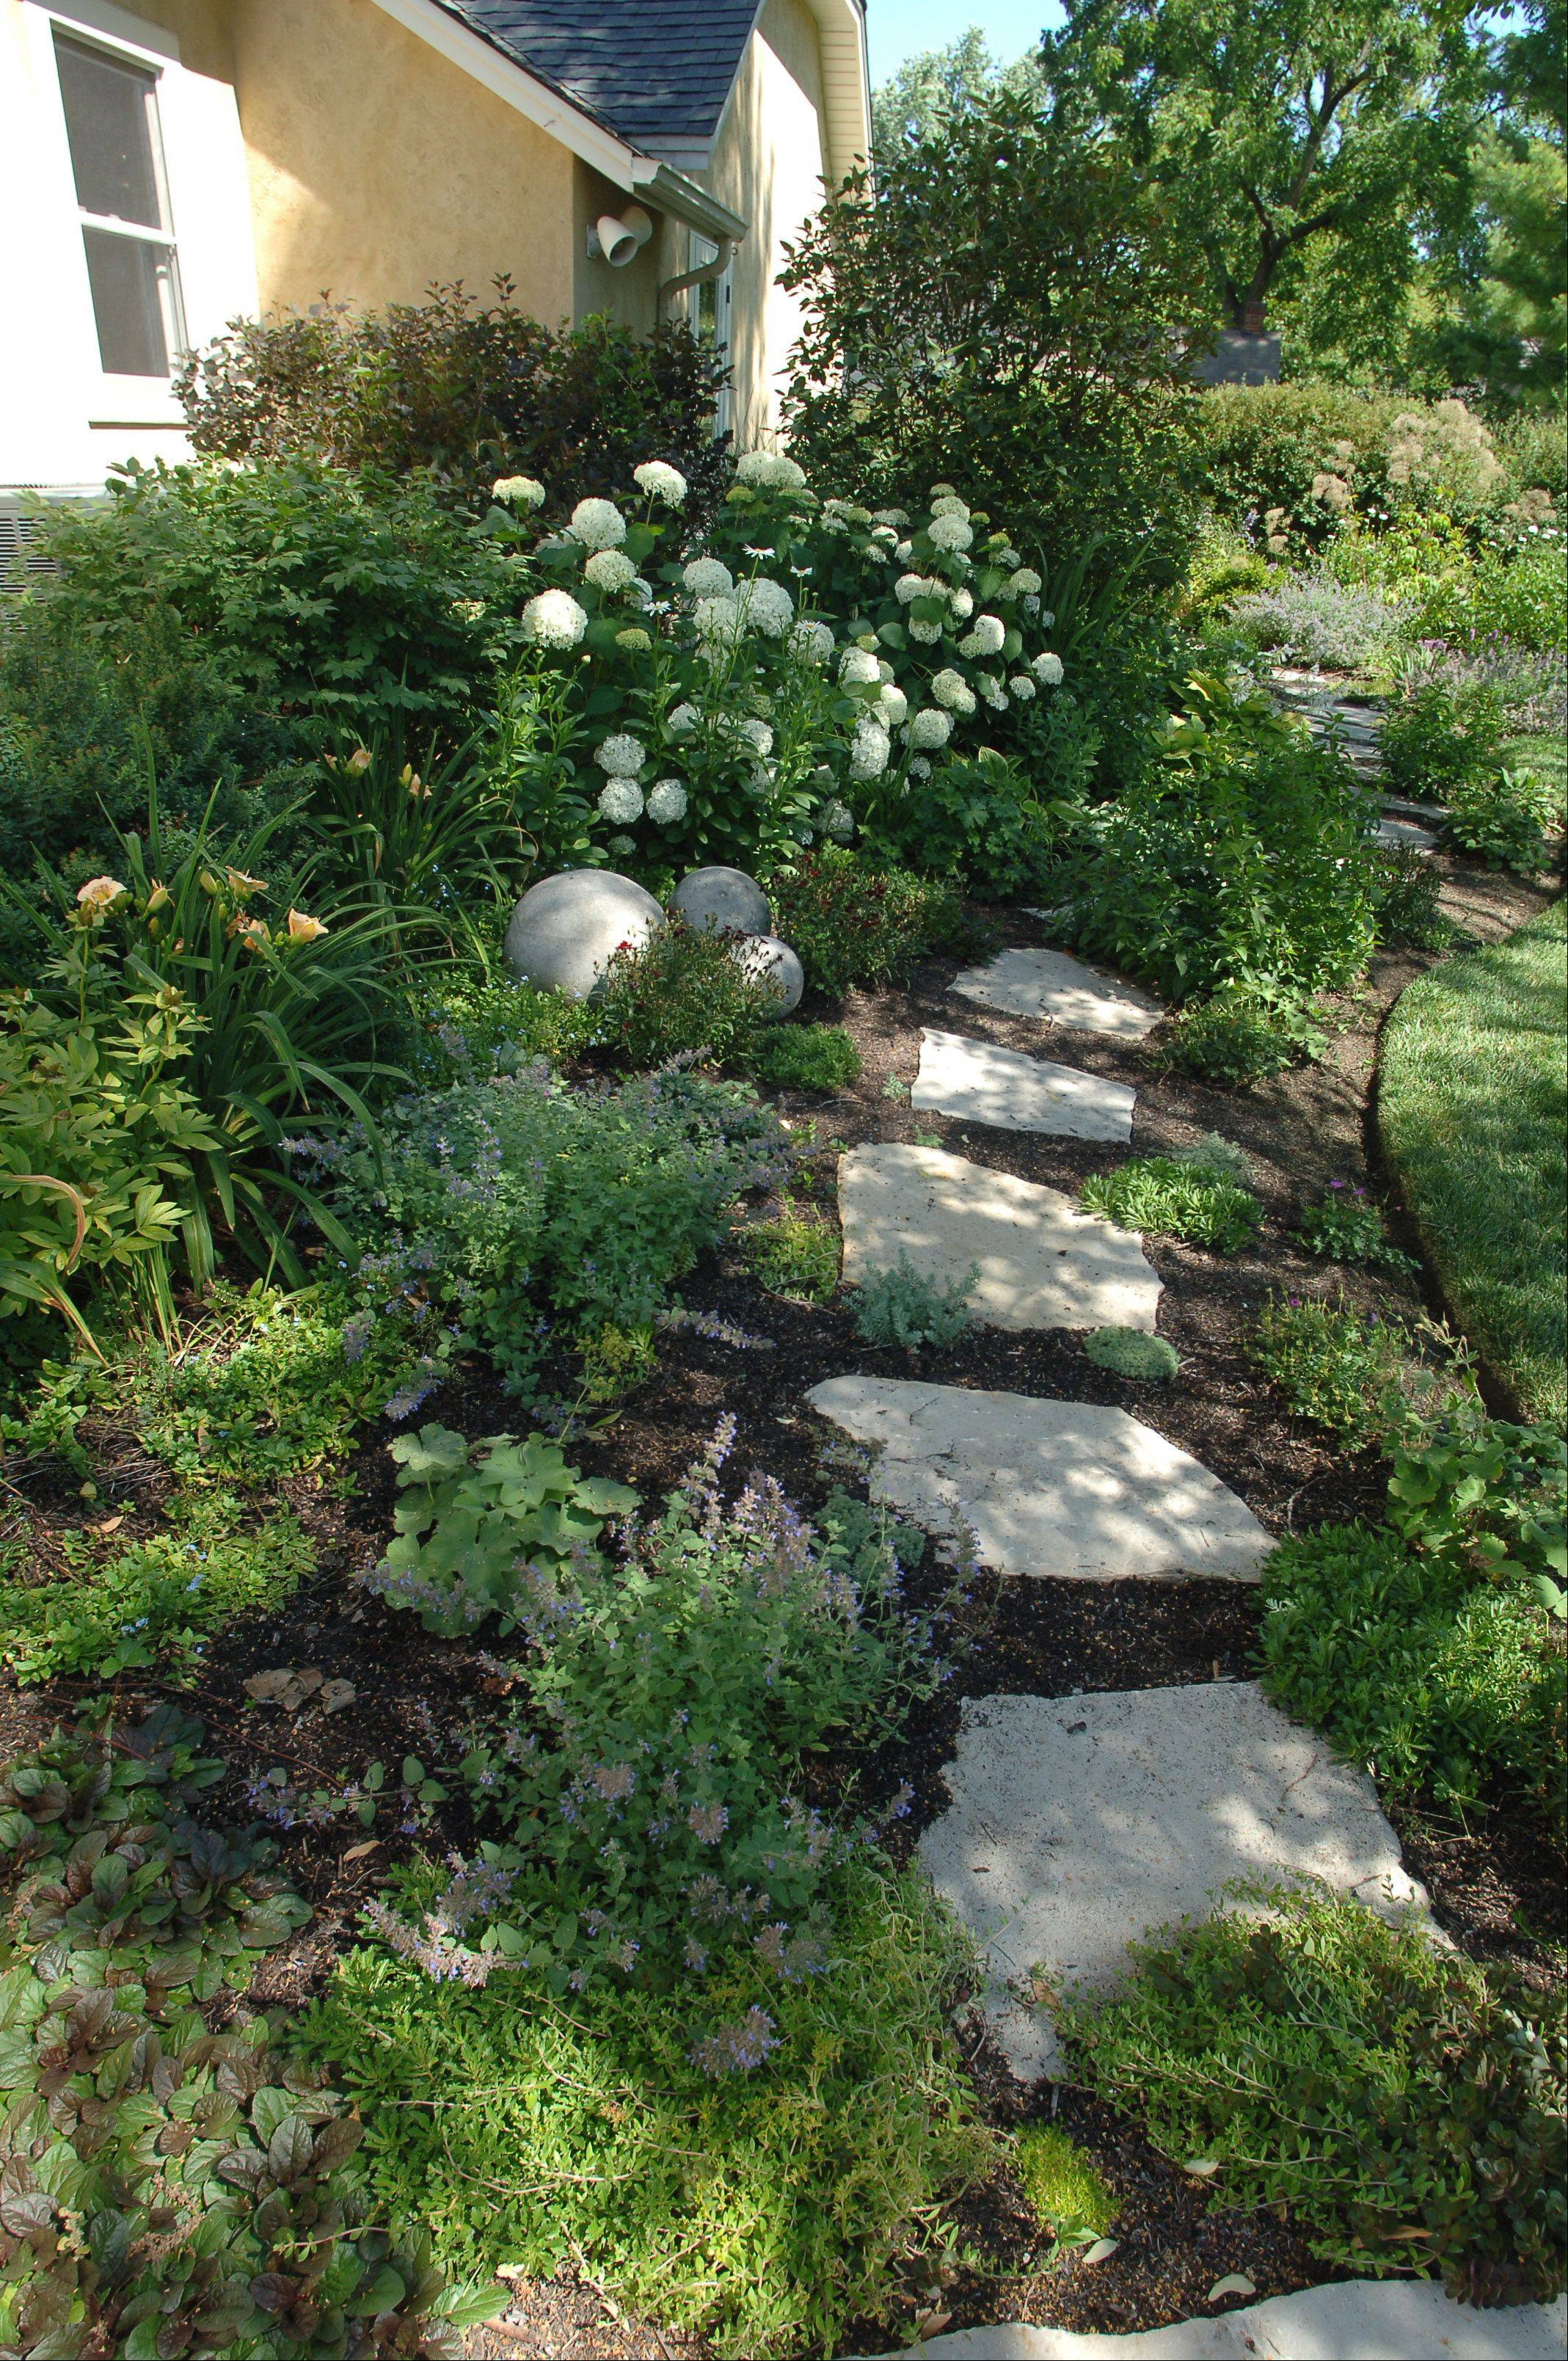 Susan Brunstrum loves the flagstone walkways through her gardens.